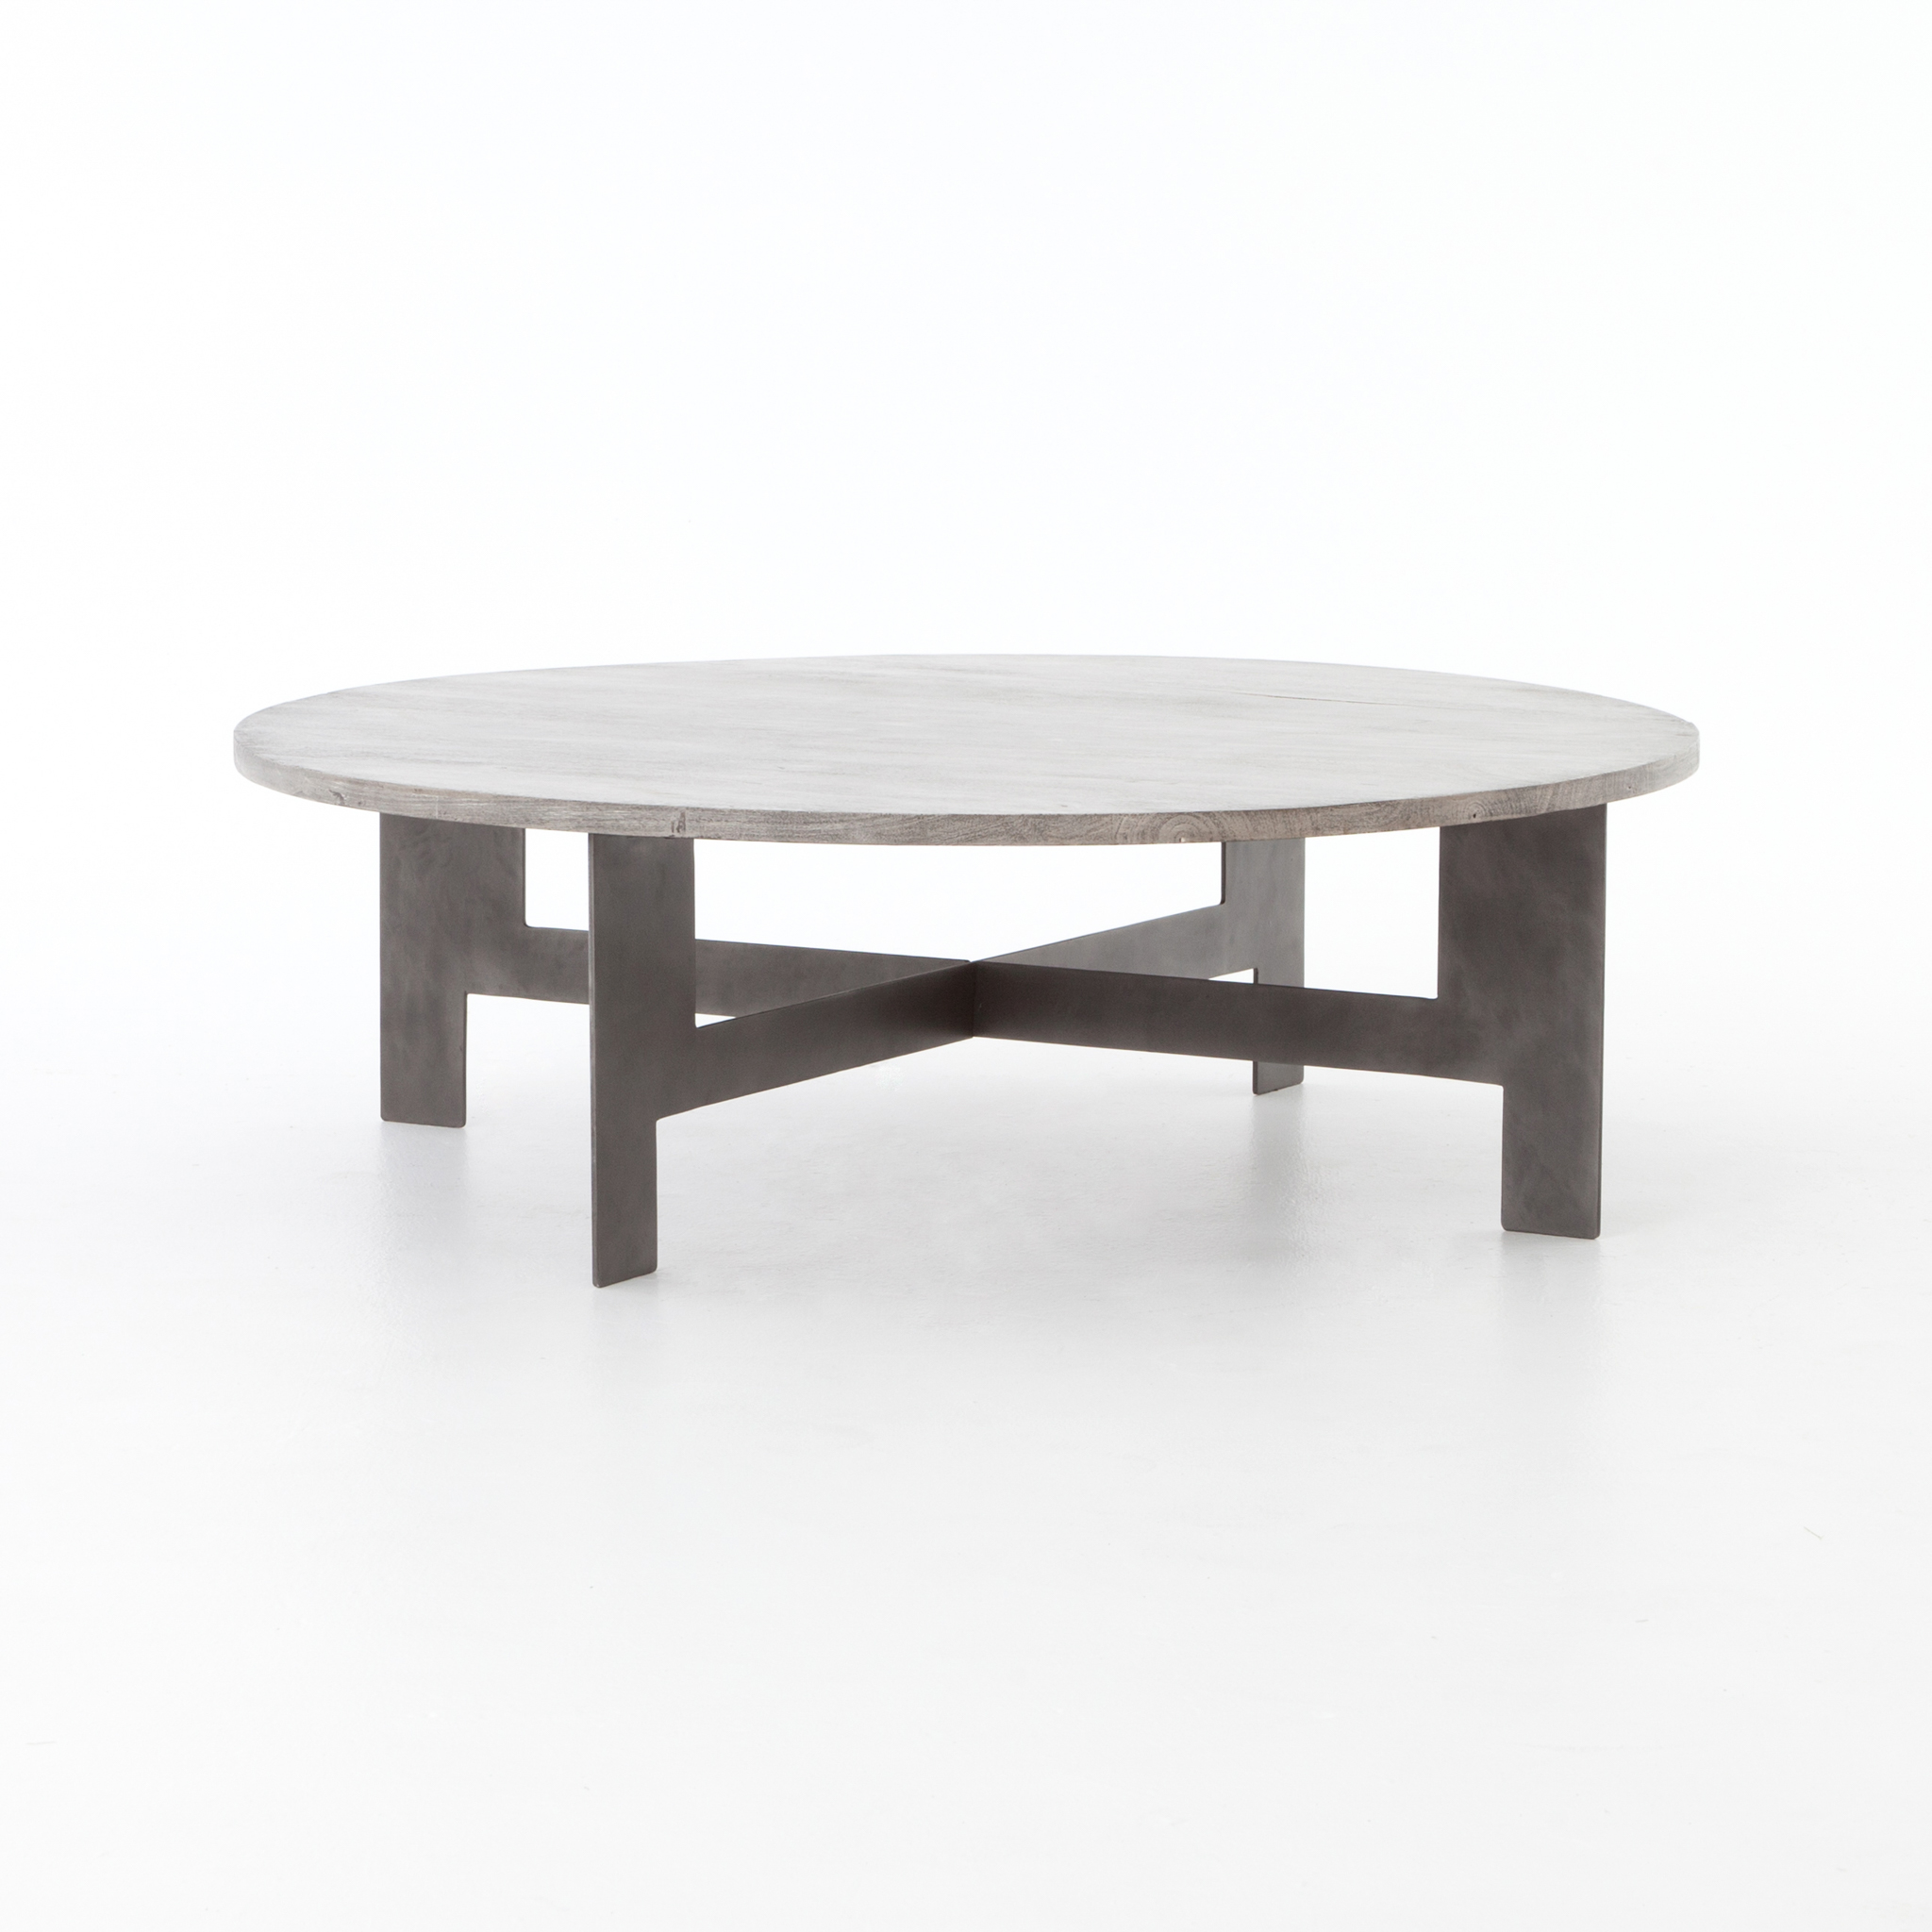 - Round Coffee Table With Iron - Boulevard Urban Living